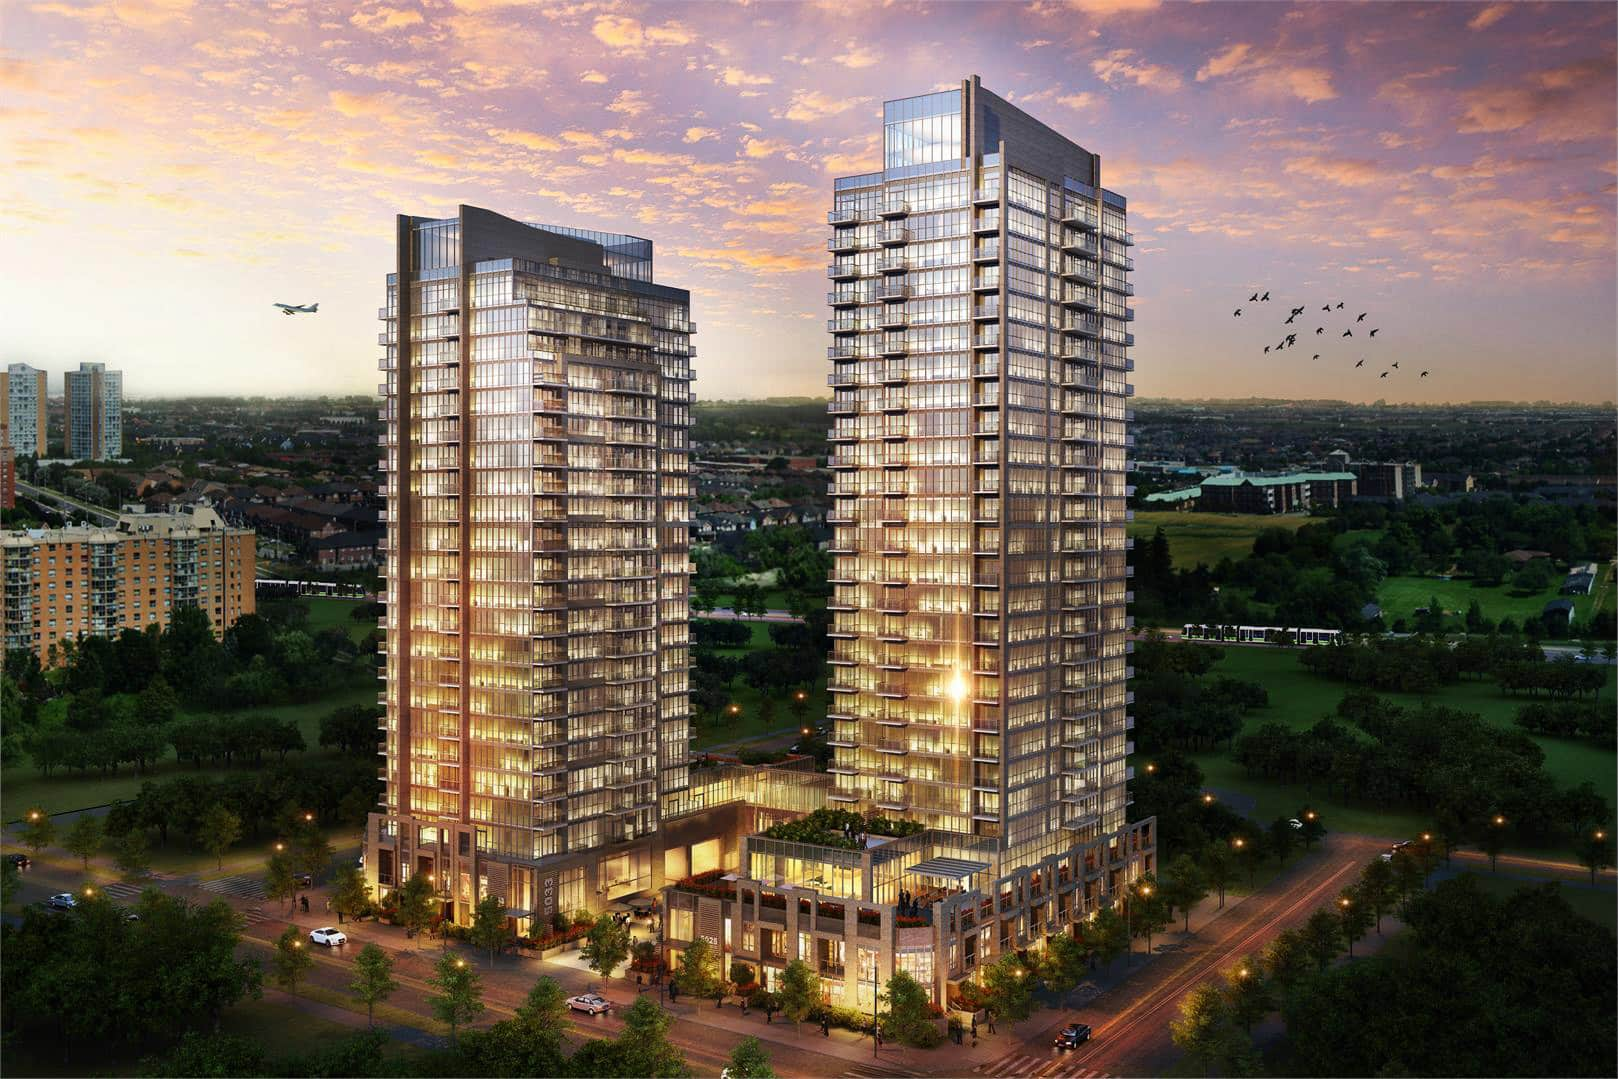 sold Our Solds | Mississauga Condos | Sold Real Estate W sold 3613152